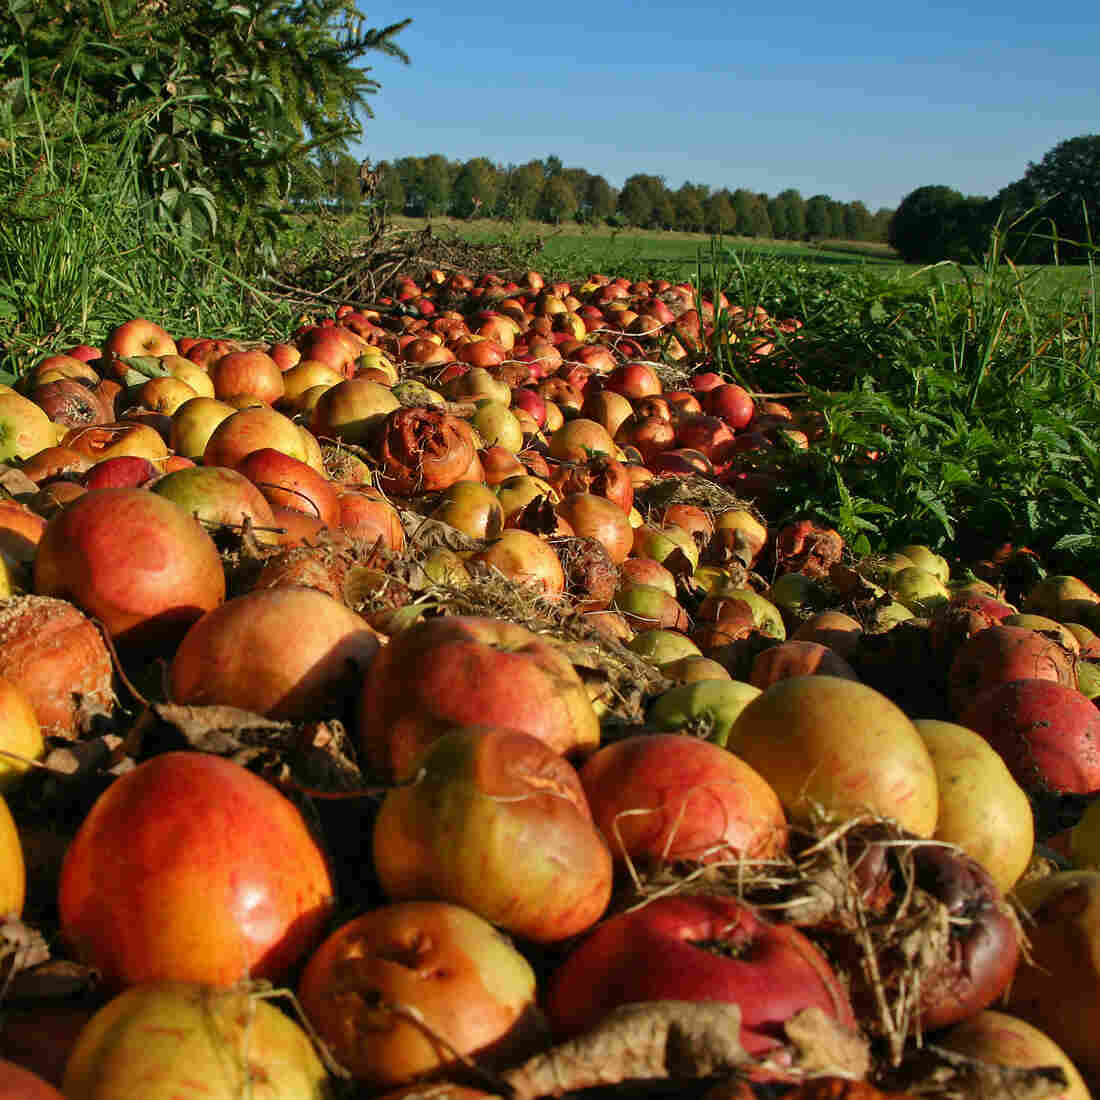 It's Time To Get Serious About Reducing Food Waste, Feds Say